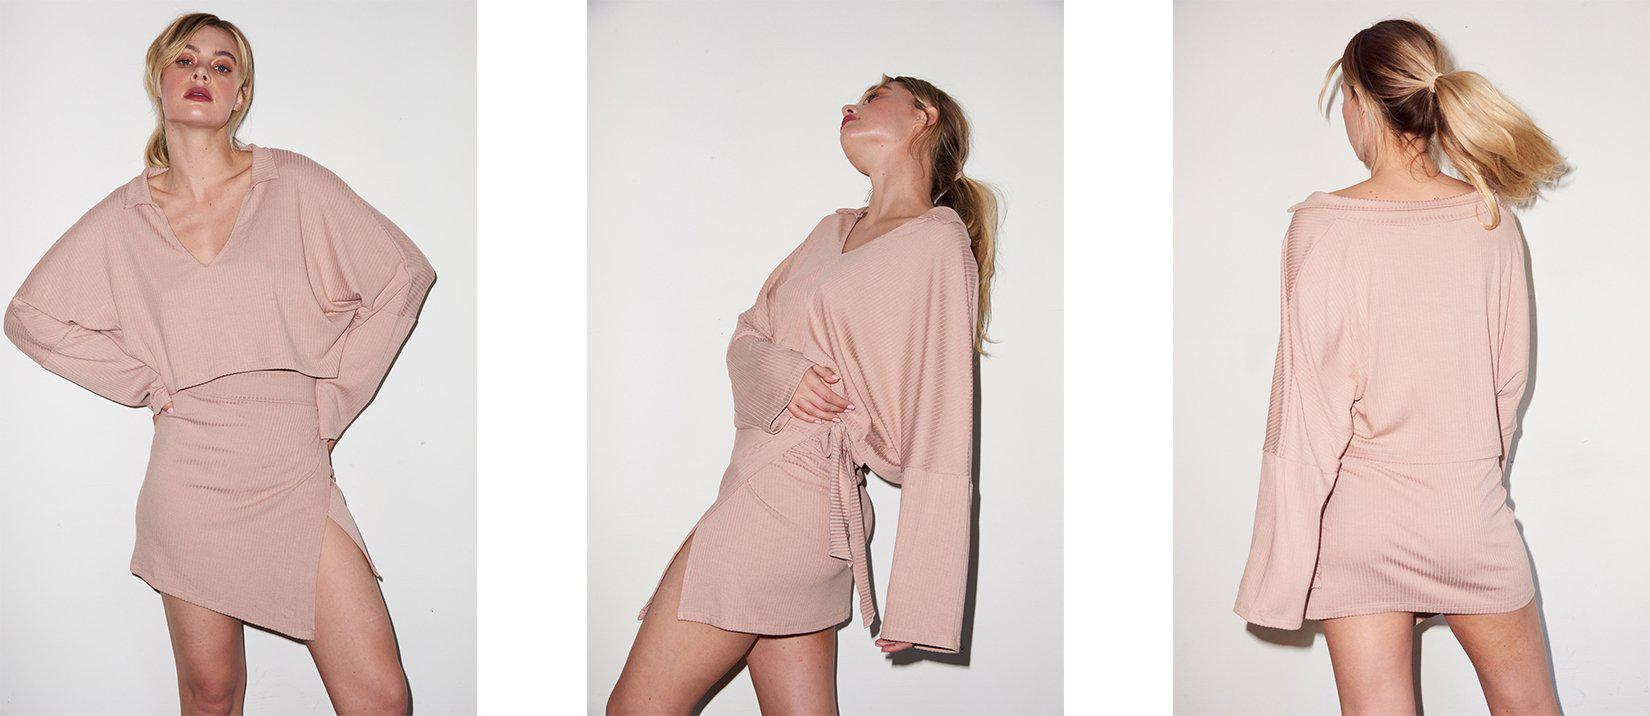 Cropped Cape Top - Nude 6